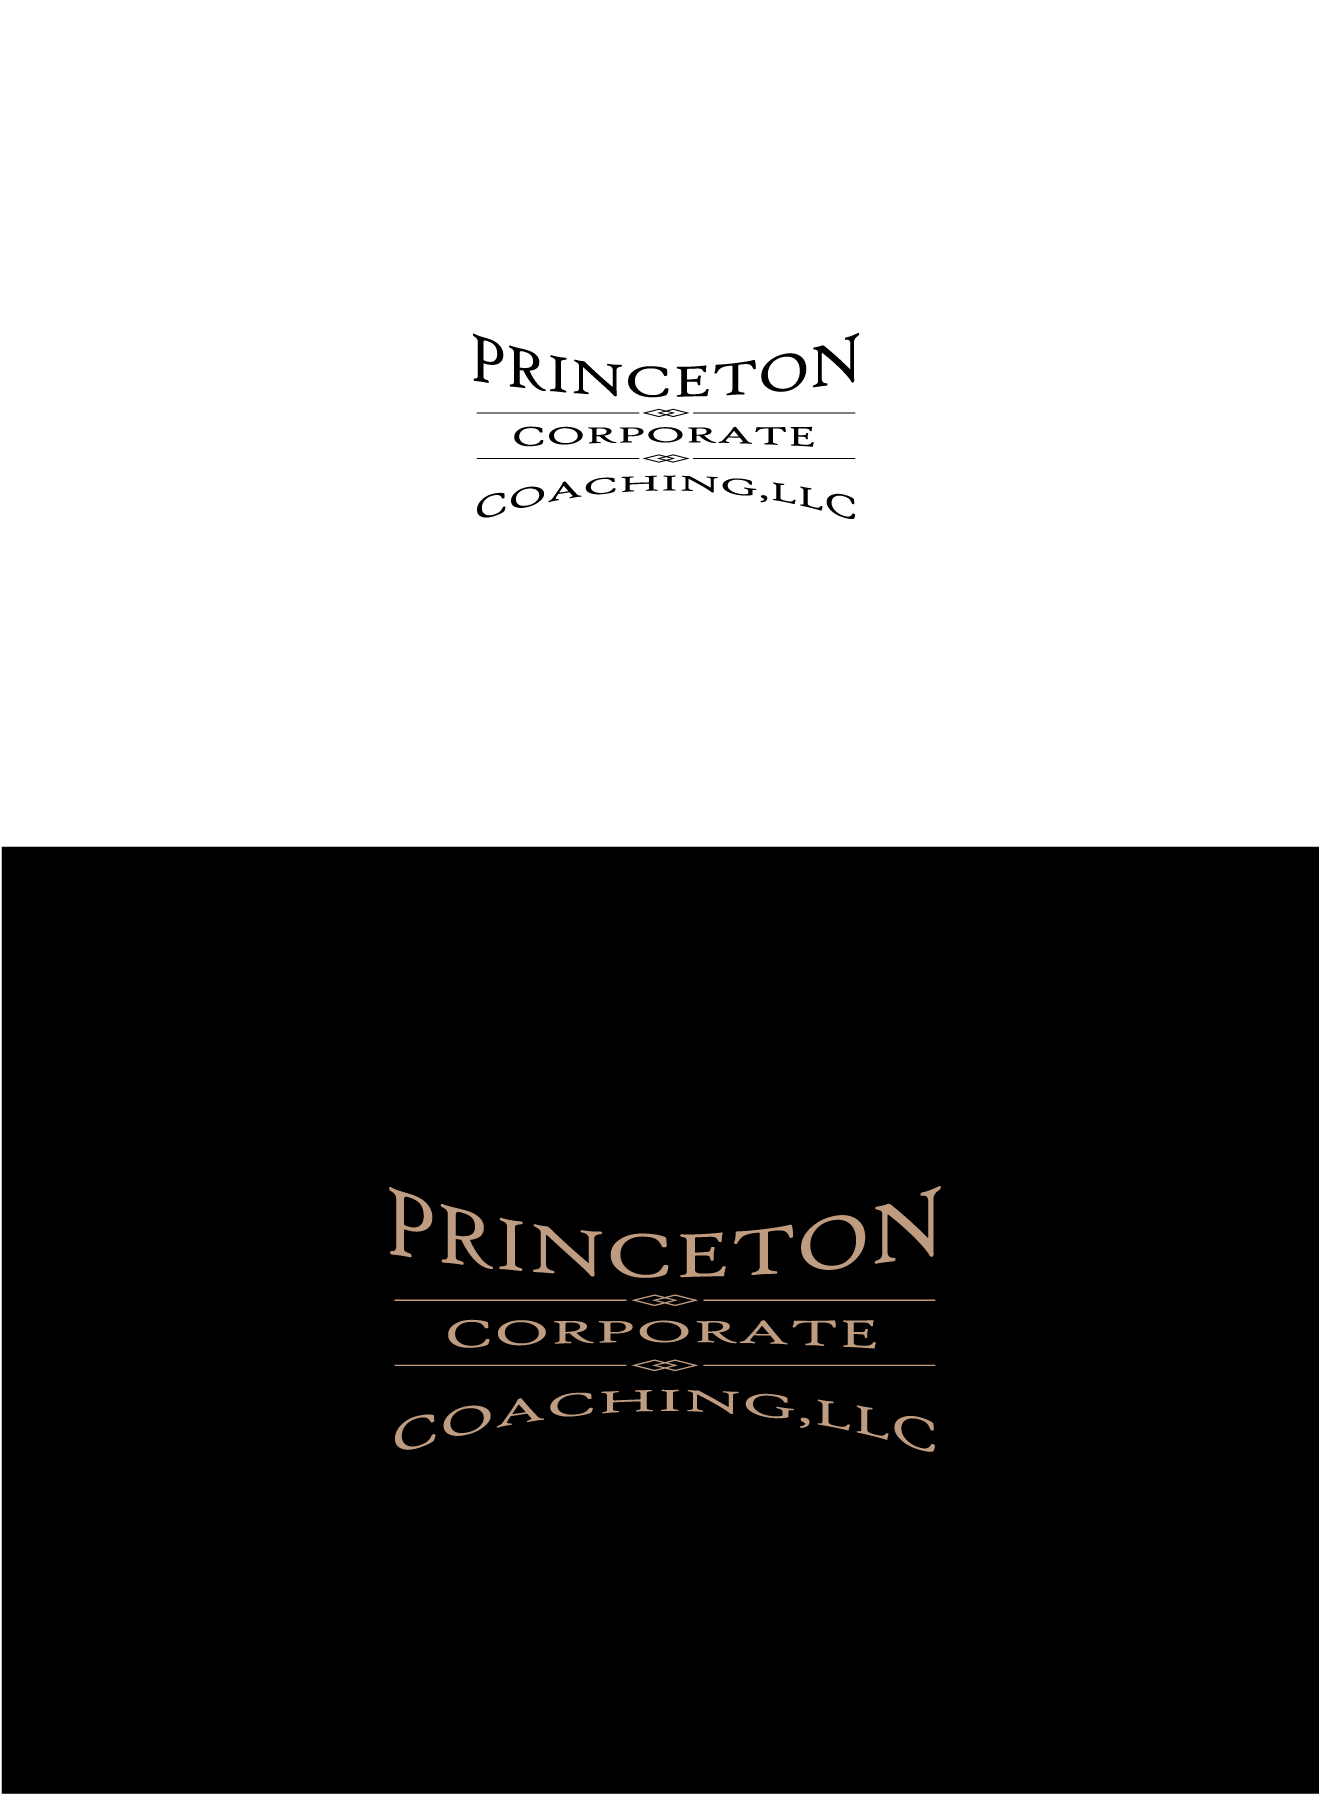 Logo Design by Wilfredo Mendoza - Entry No. 215 in the Logo Design Contest Unique Logo Design Wanted for Princeton Corporate Coaching, LLC.